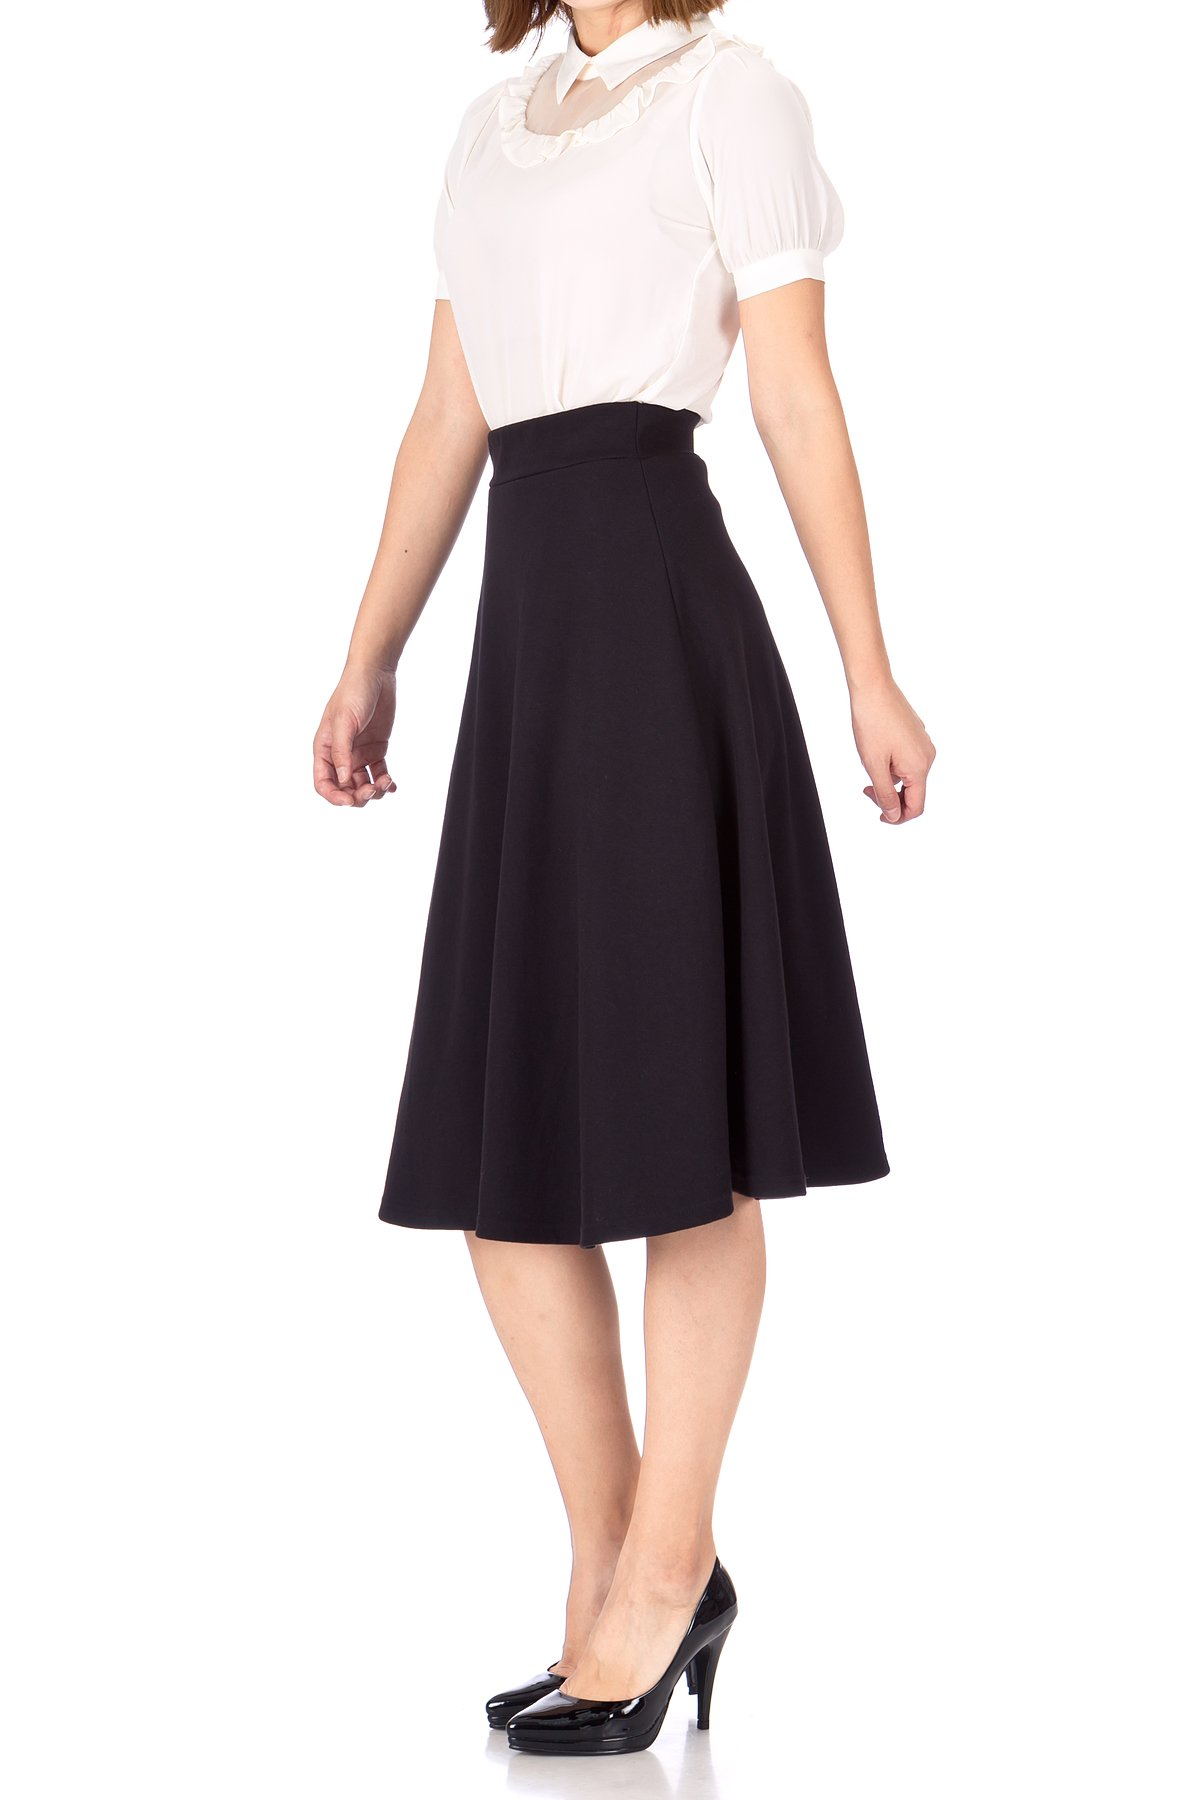 Everyday High Waist A Line Flared Skater Midi Skirt Black 03 1